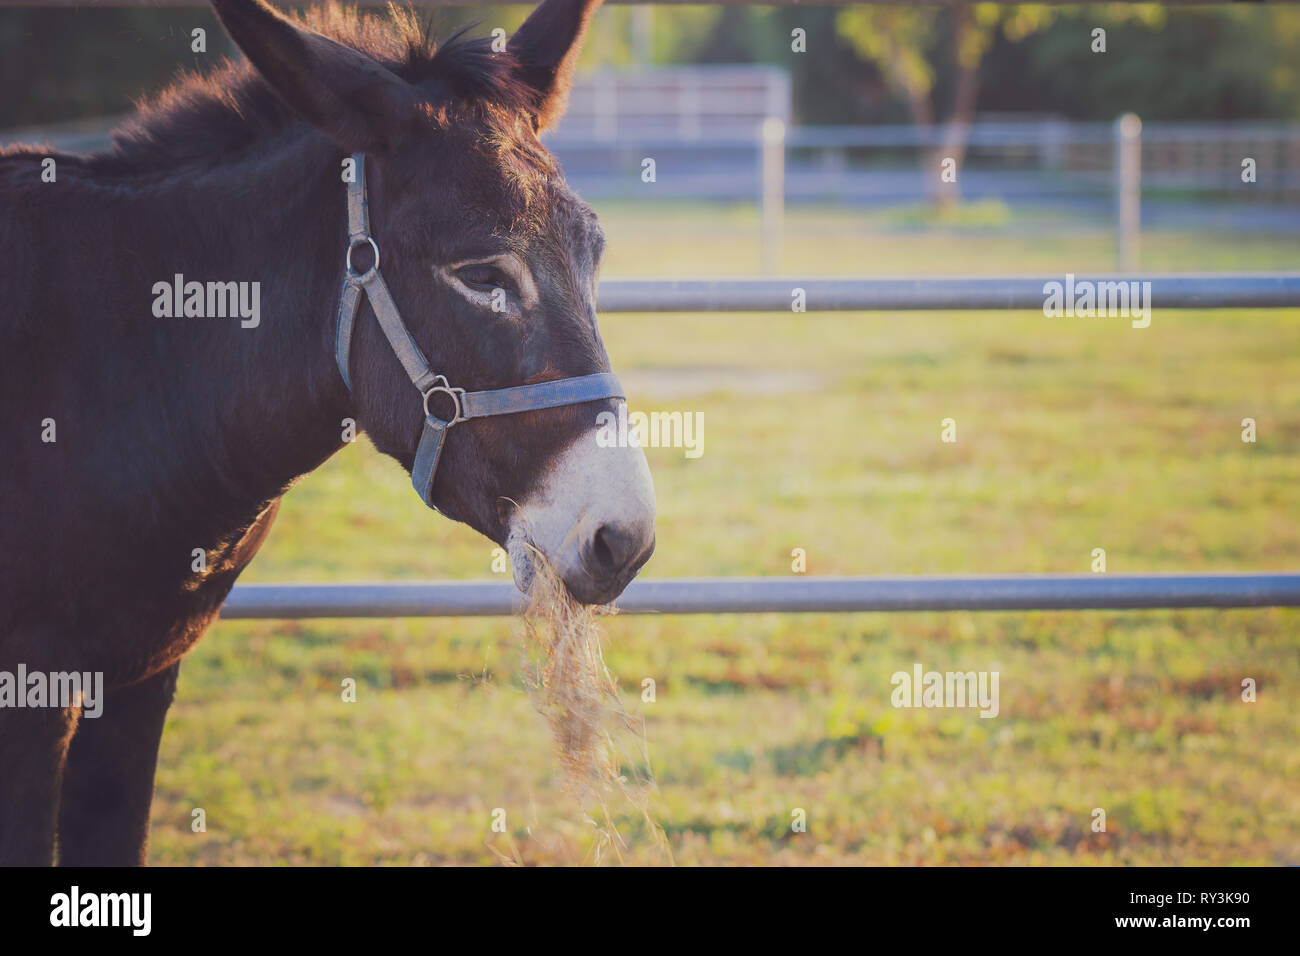 Closeup mule chewing grass in the farm and sunshine in the evening. Concept of livestock. Copy space for text. Stock Photo